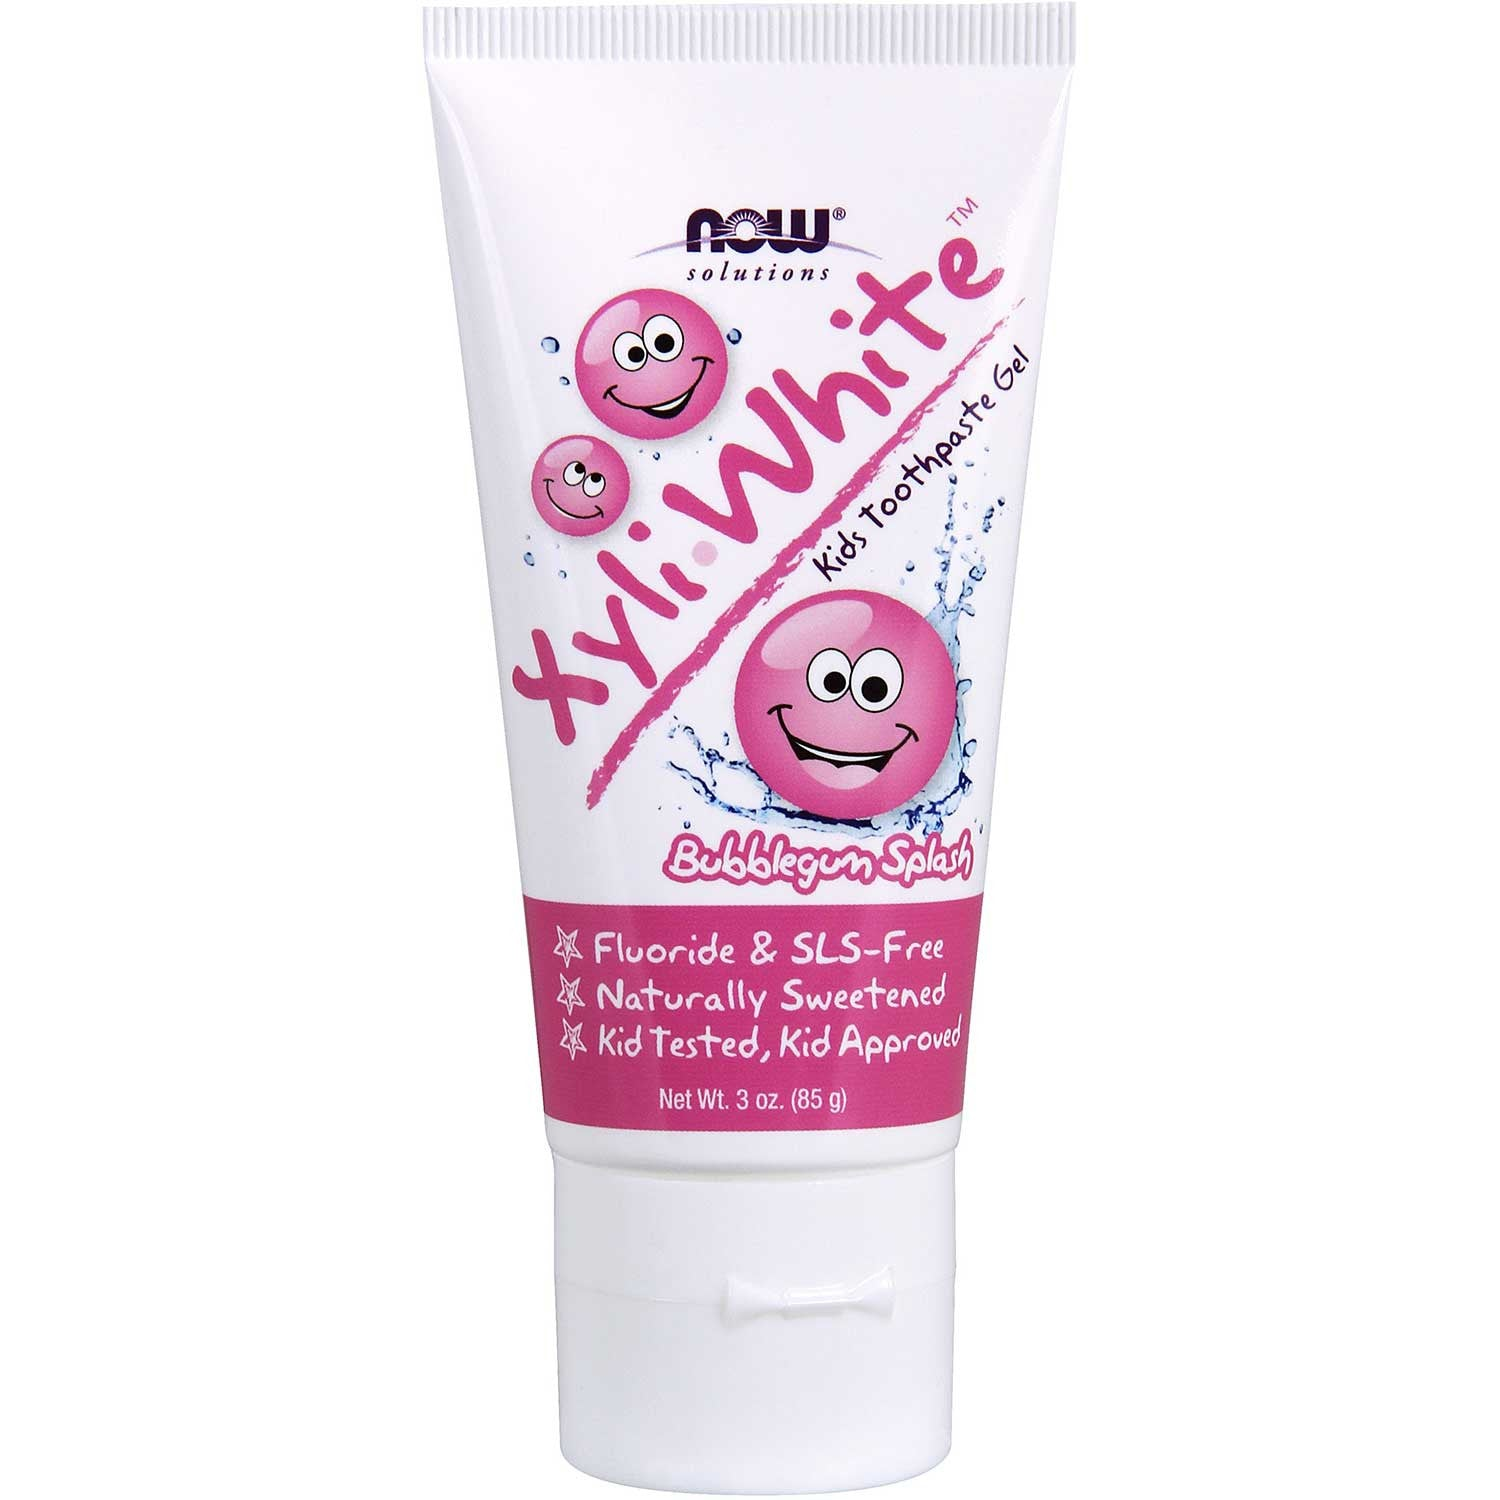 NOW XyliWhite Kids Toothpaste Gel - Bubblegum Splash, 85 g.-NaturesWisdom